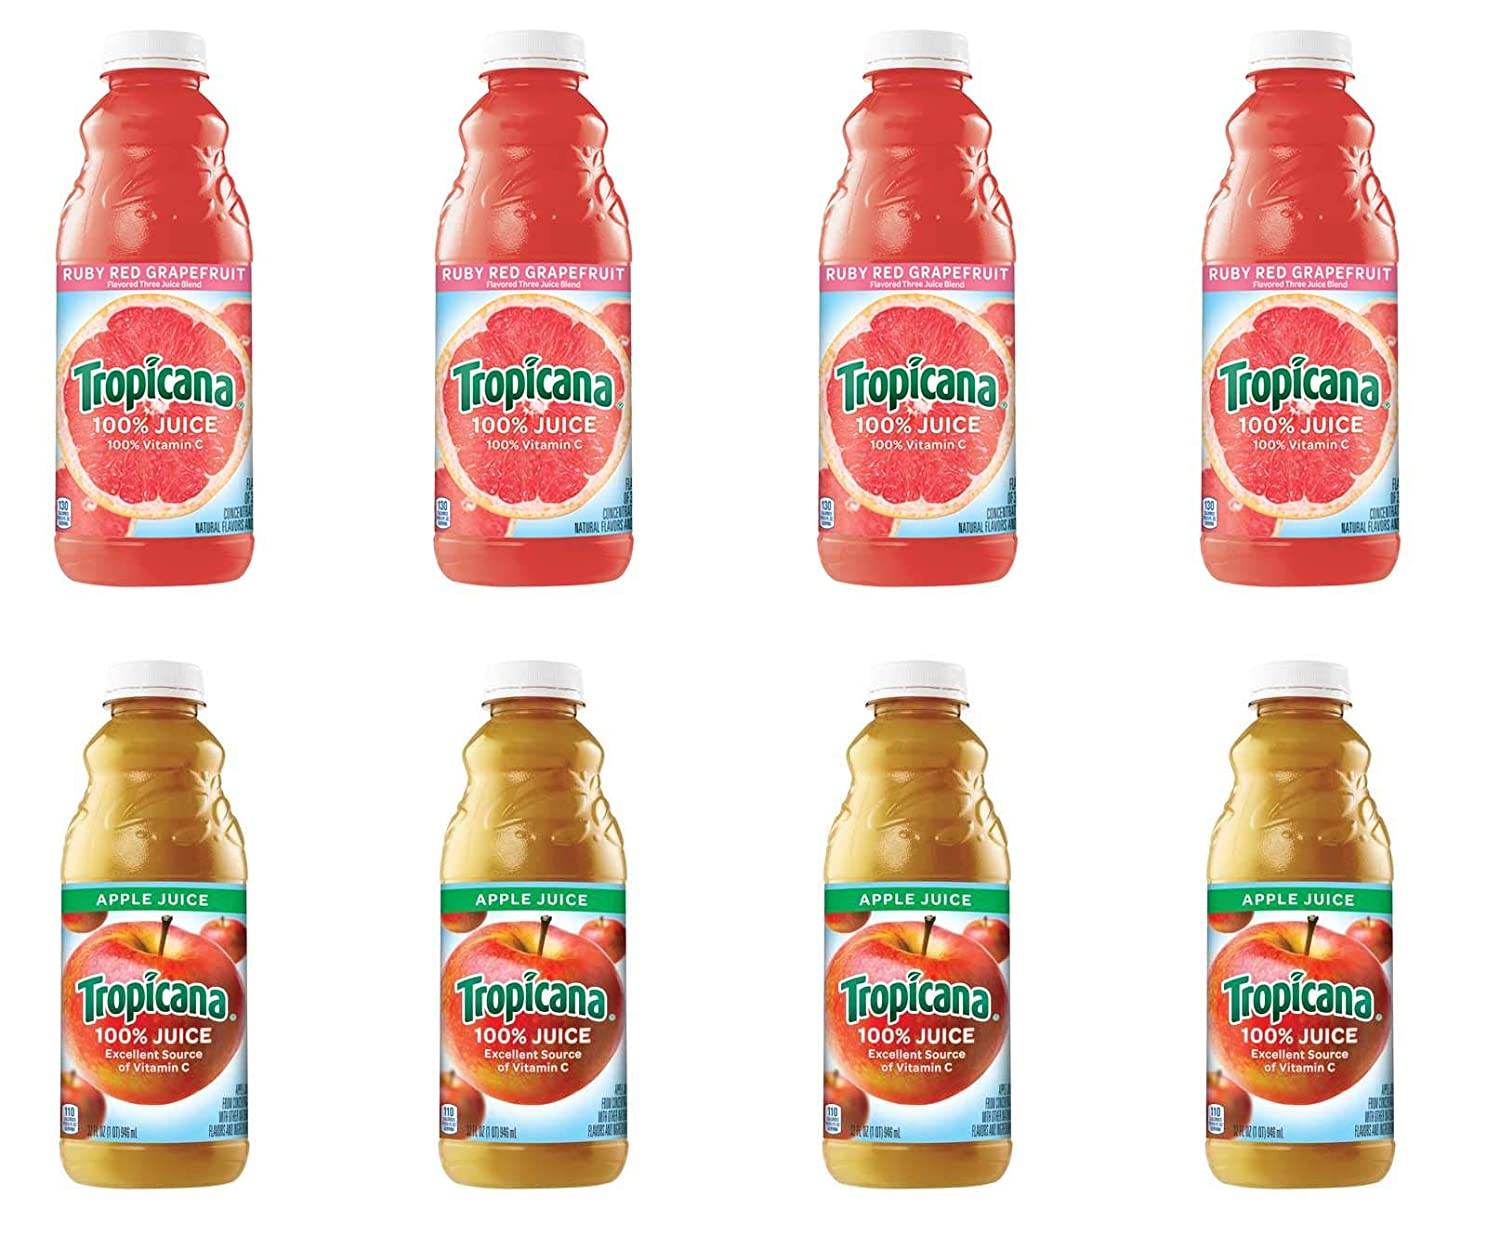 LUV BOX-Variety Tropicana Pack ,Pack of 8 , 32 oz , Ruby Red Grapefruit , Apple Juice